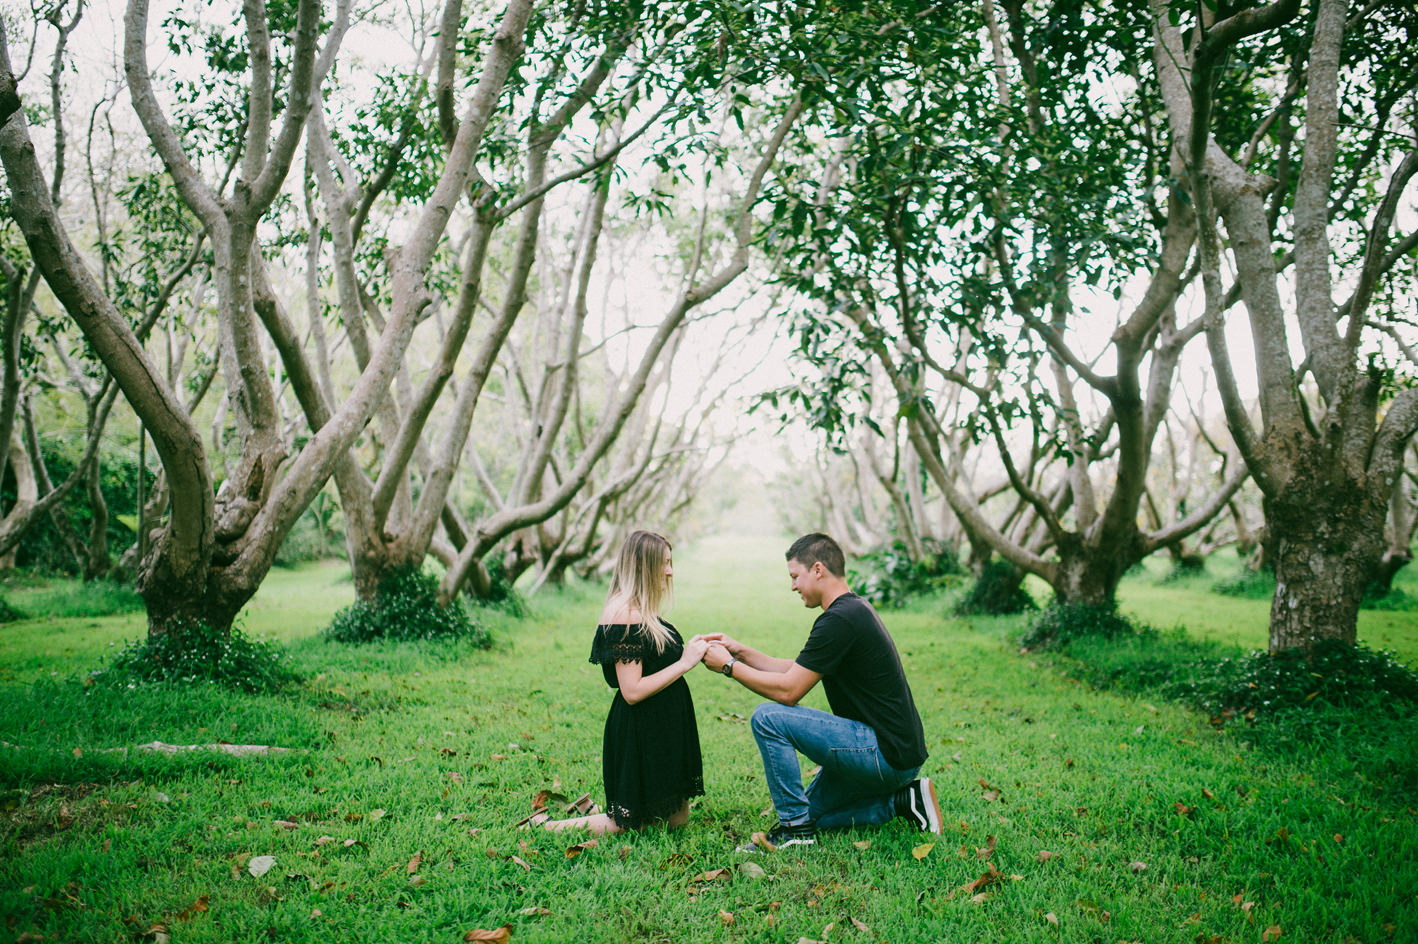 021-proposal-dan-ash_sophie-baker-photography